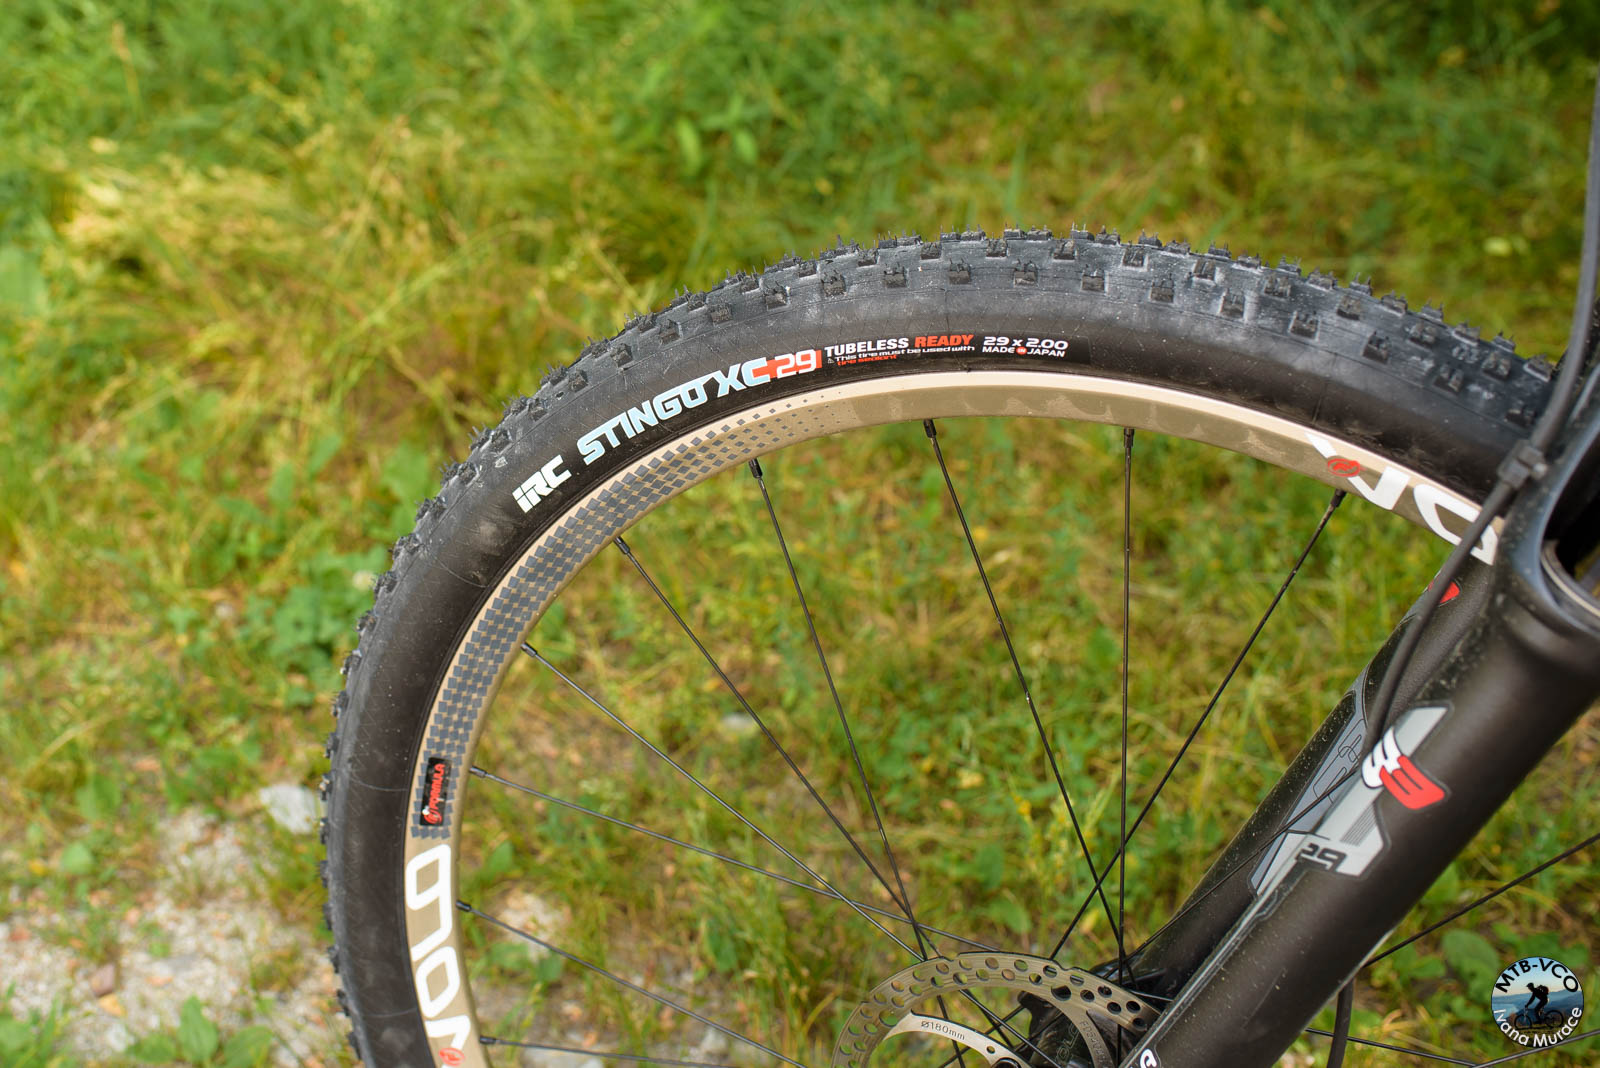 In test: IRC Stingo XC/G-Claw Tubeless Ready 29 x 2.0″